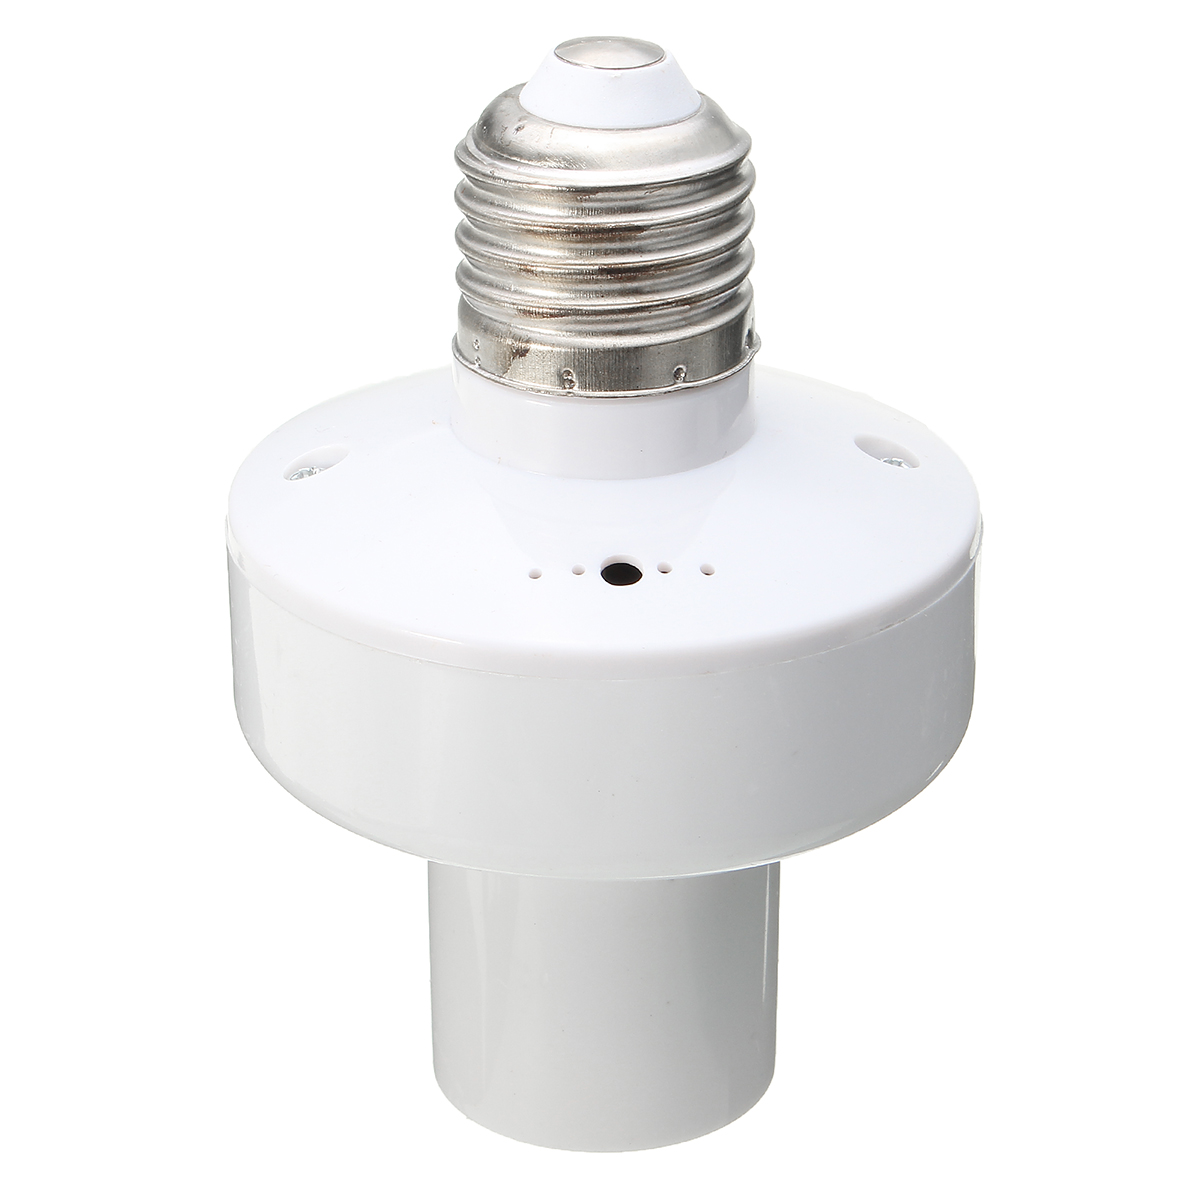 Image 4 - 3PCS E27 Screw Wireless Remote Control Light Lamp Bulb Holder Cap Socket Switch Converter Splitter Adapter AC110V/180 240V-in Lamp Bases from Lights & Lighting